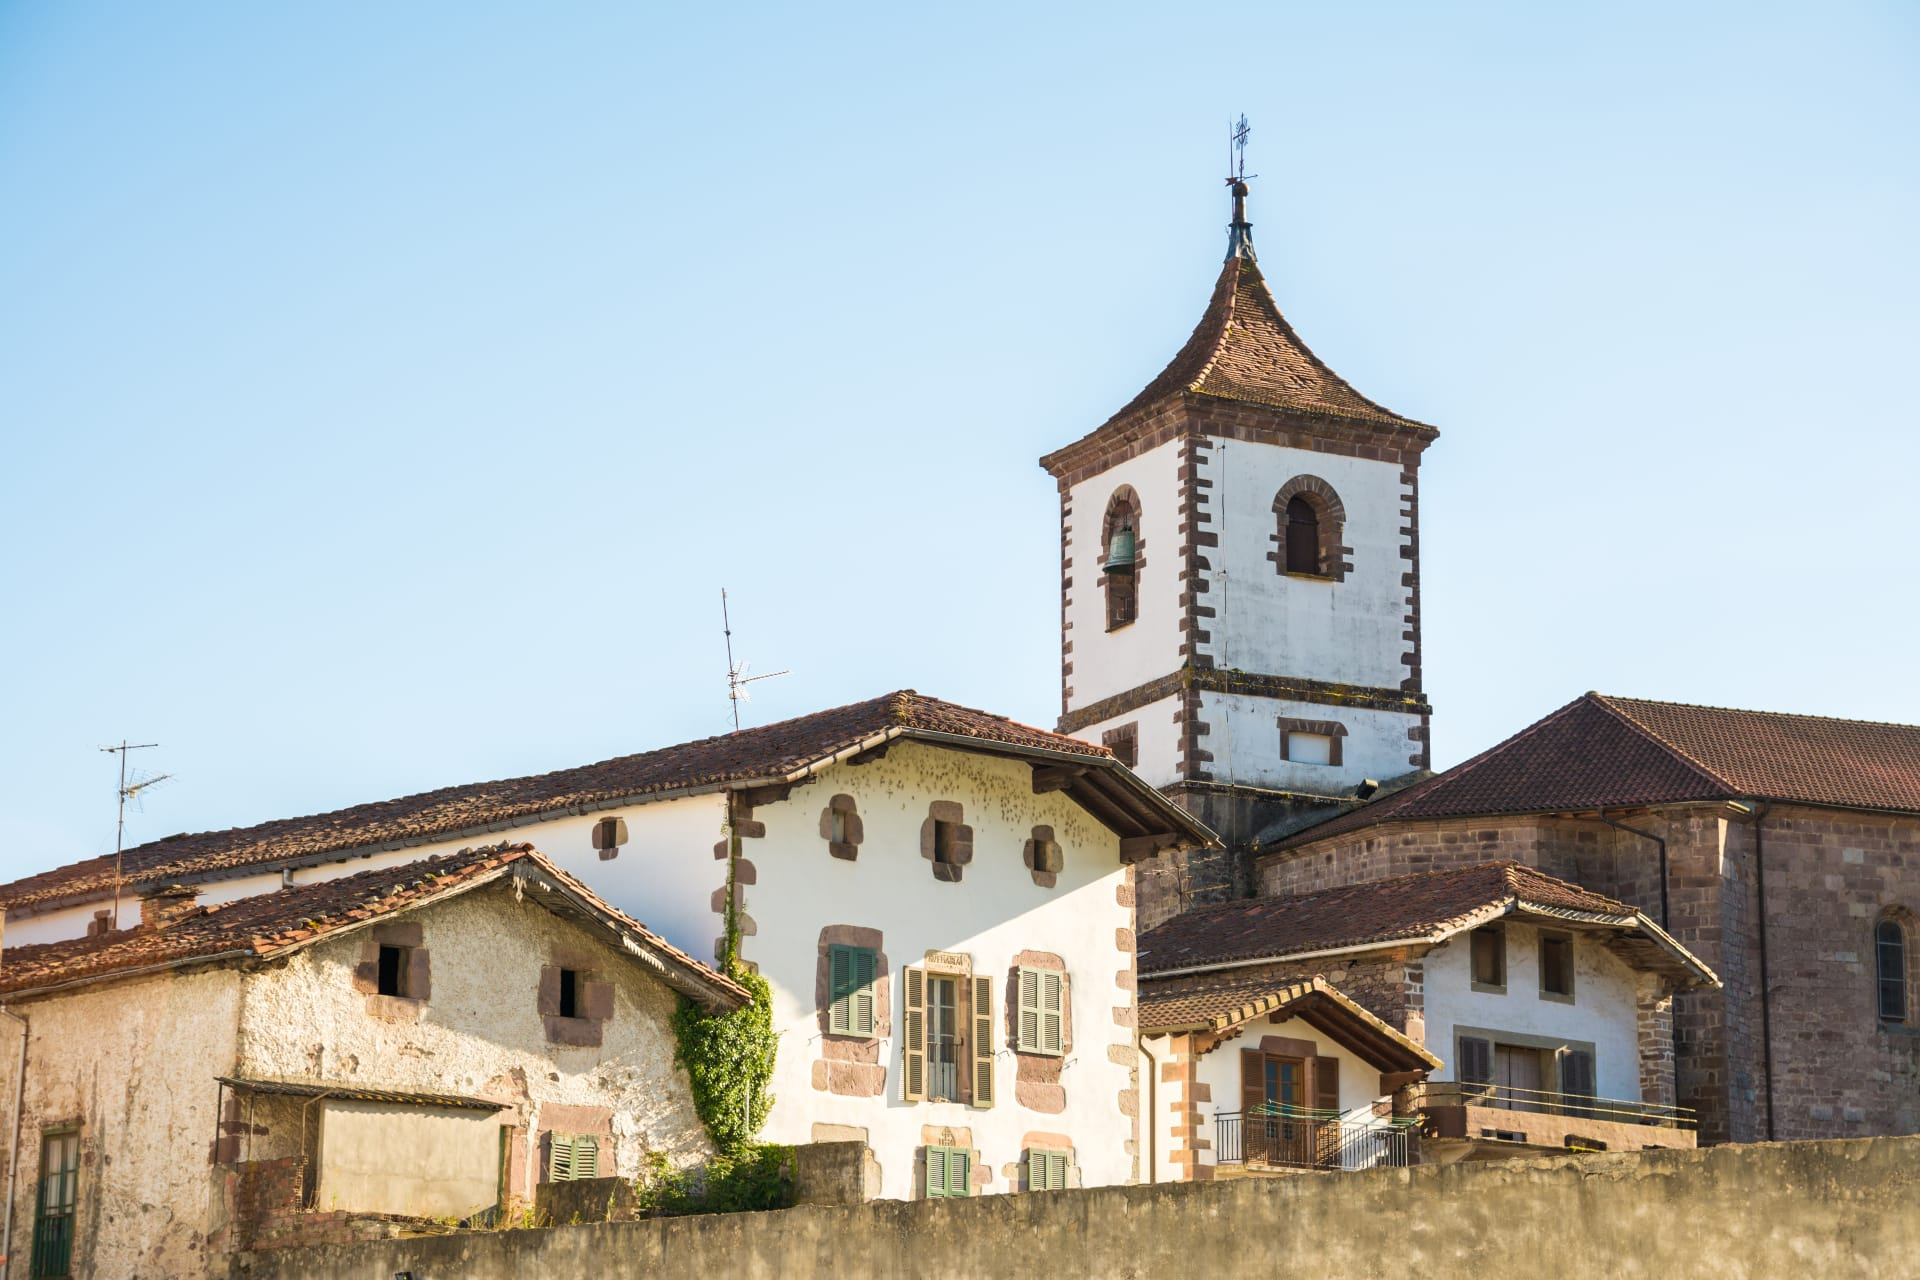 Pamplona - Where Human Kindness Was Found In WWII